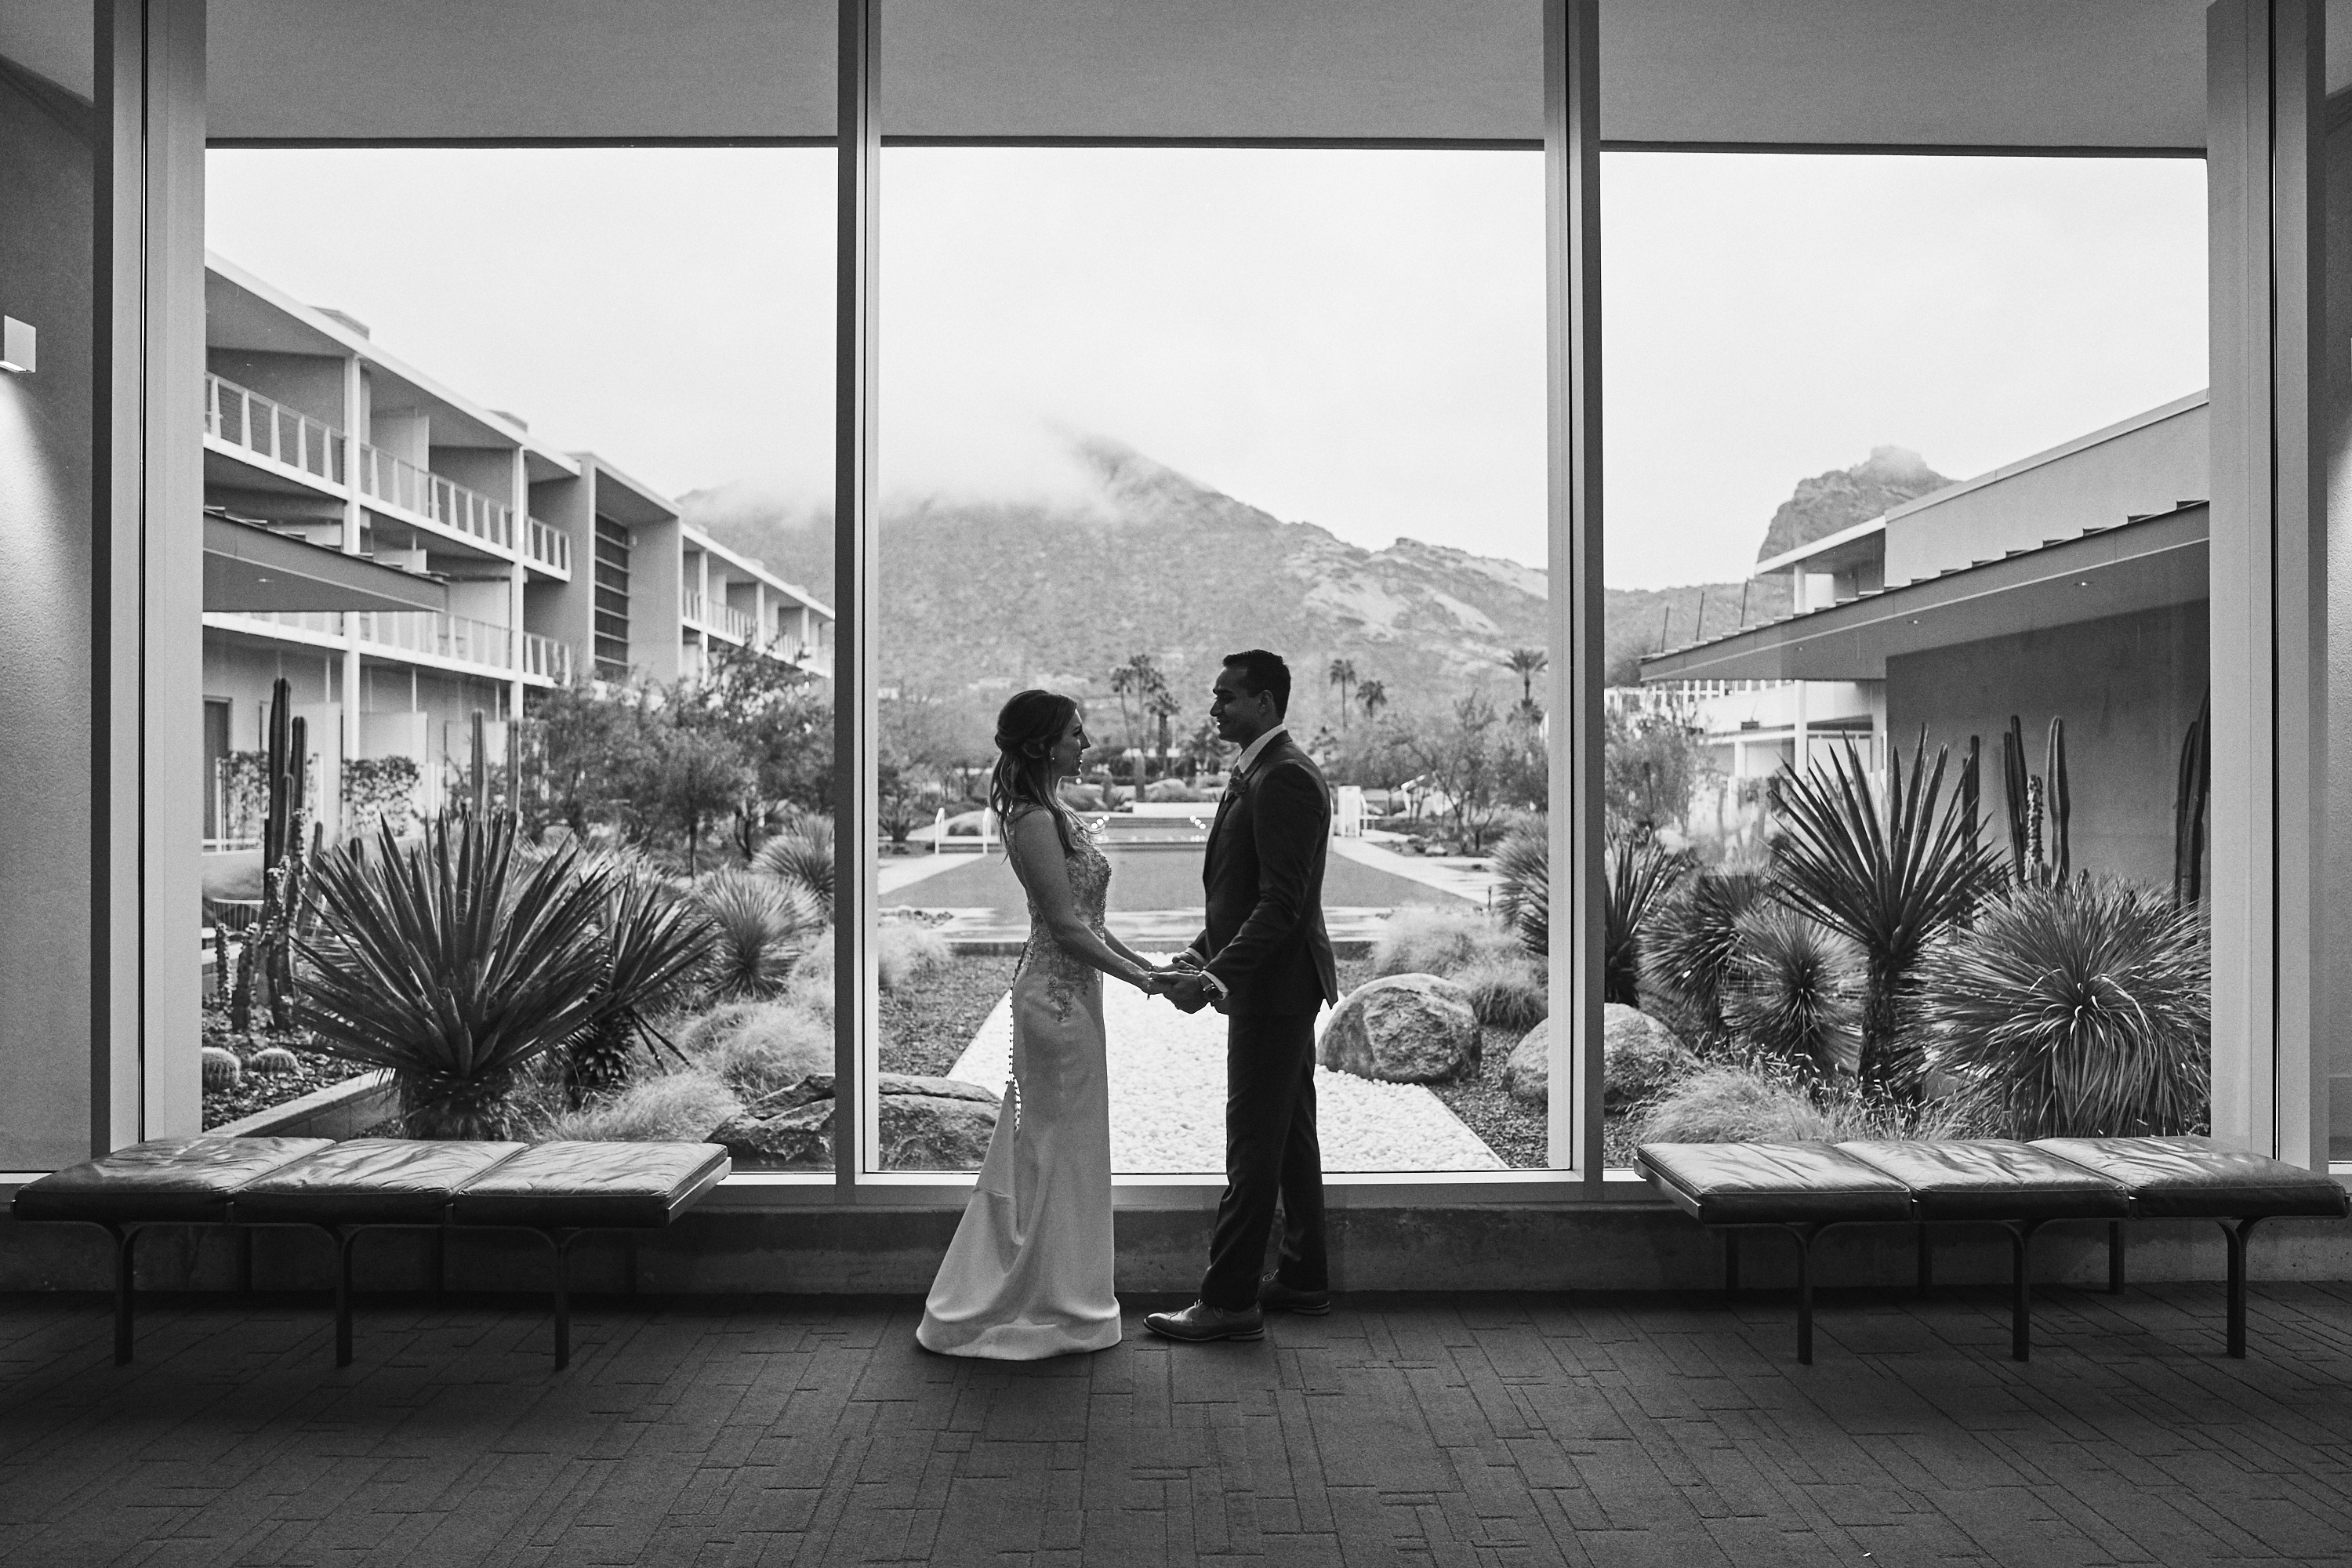 Wedding couple on a rainy day